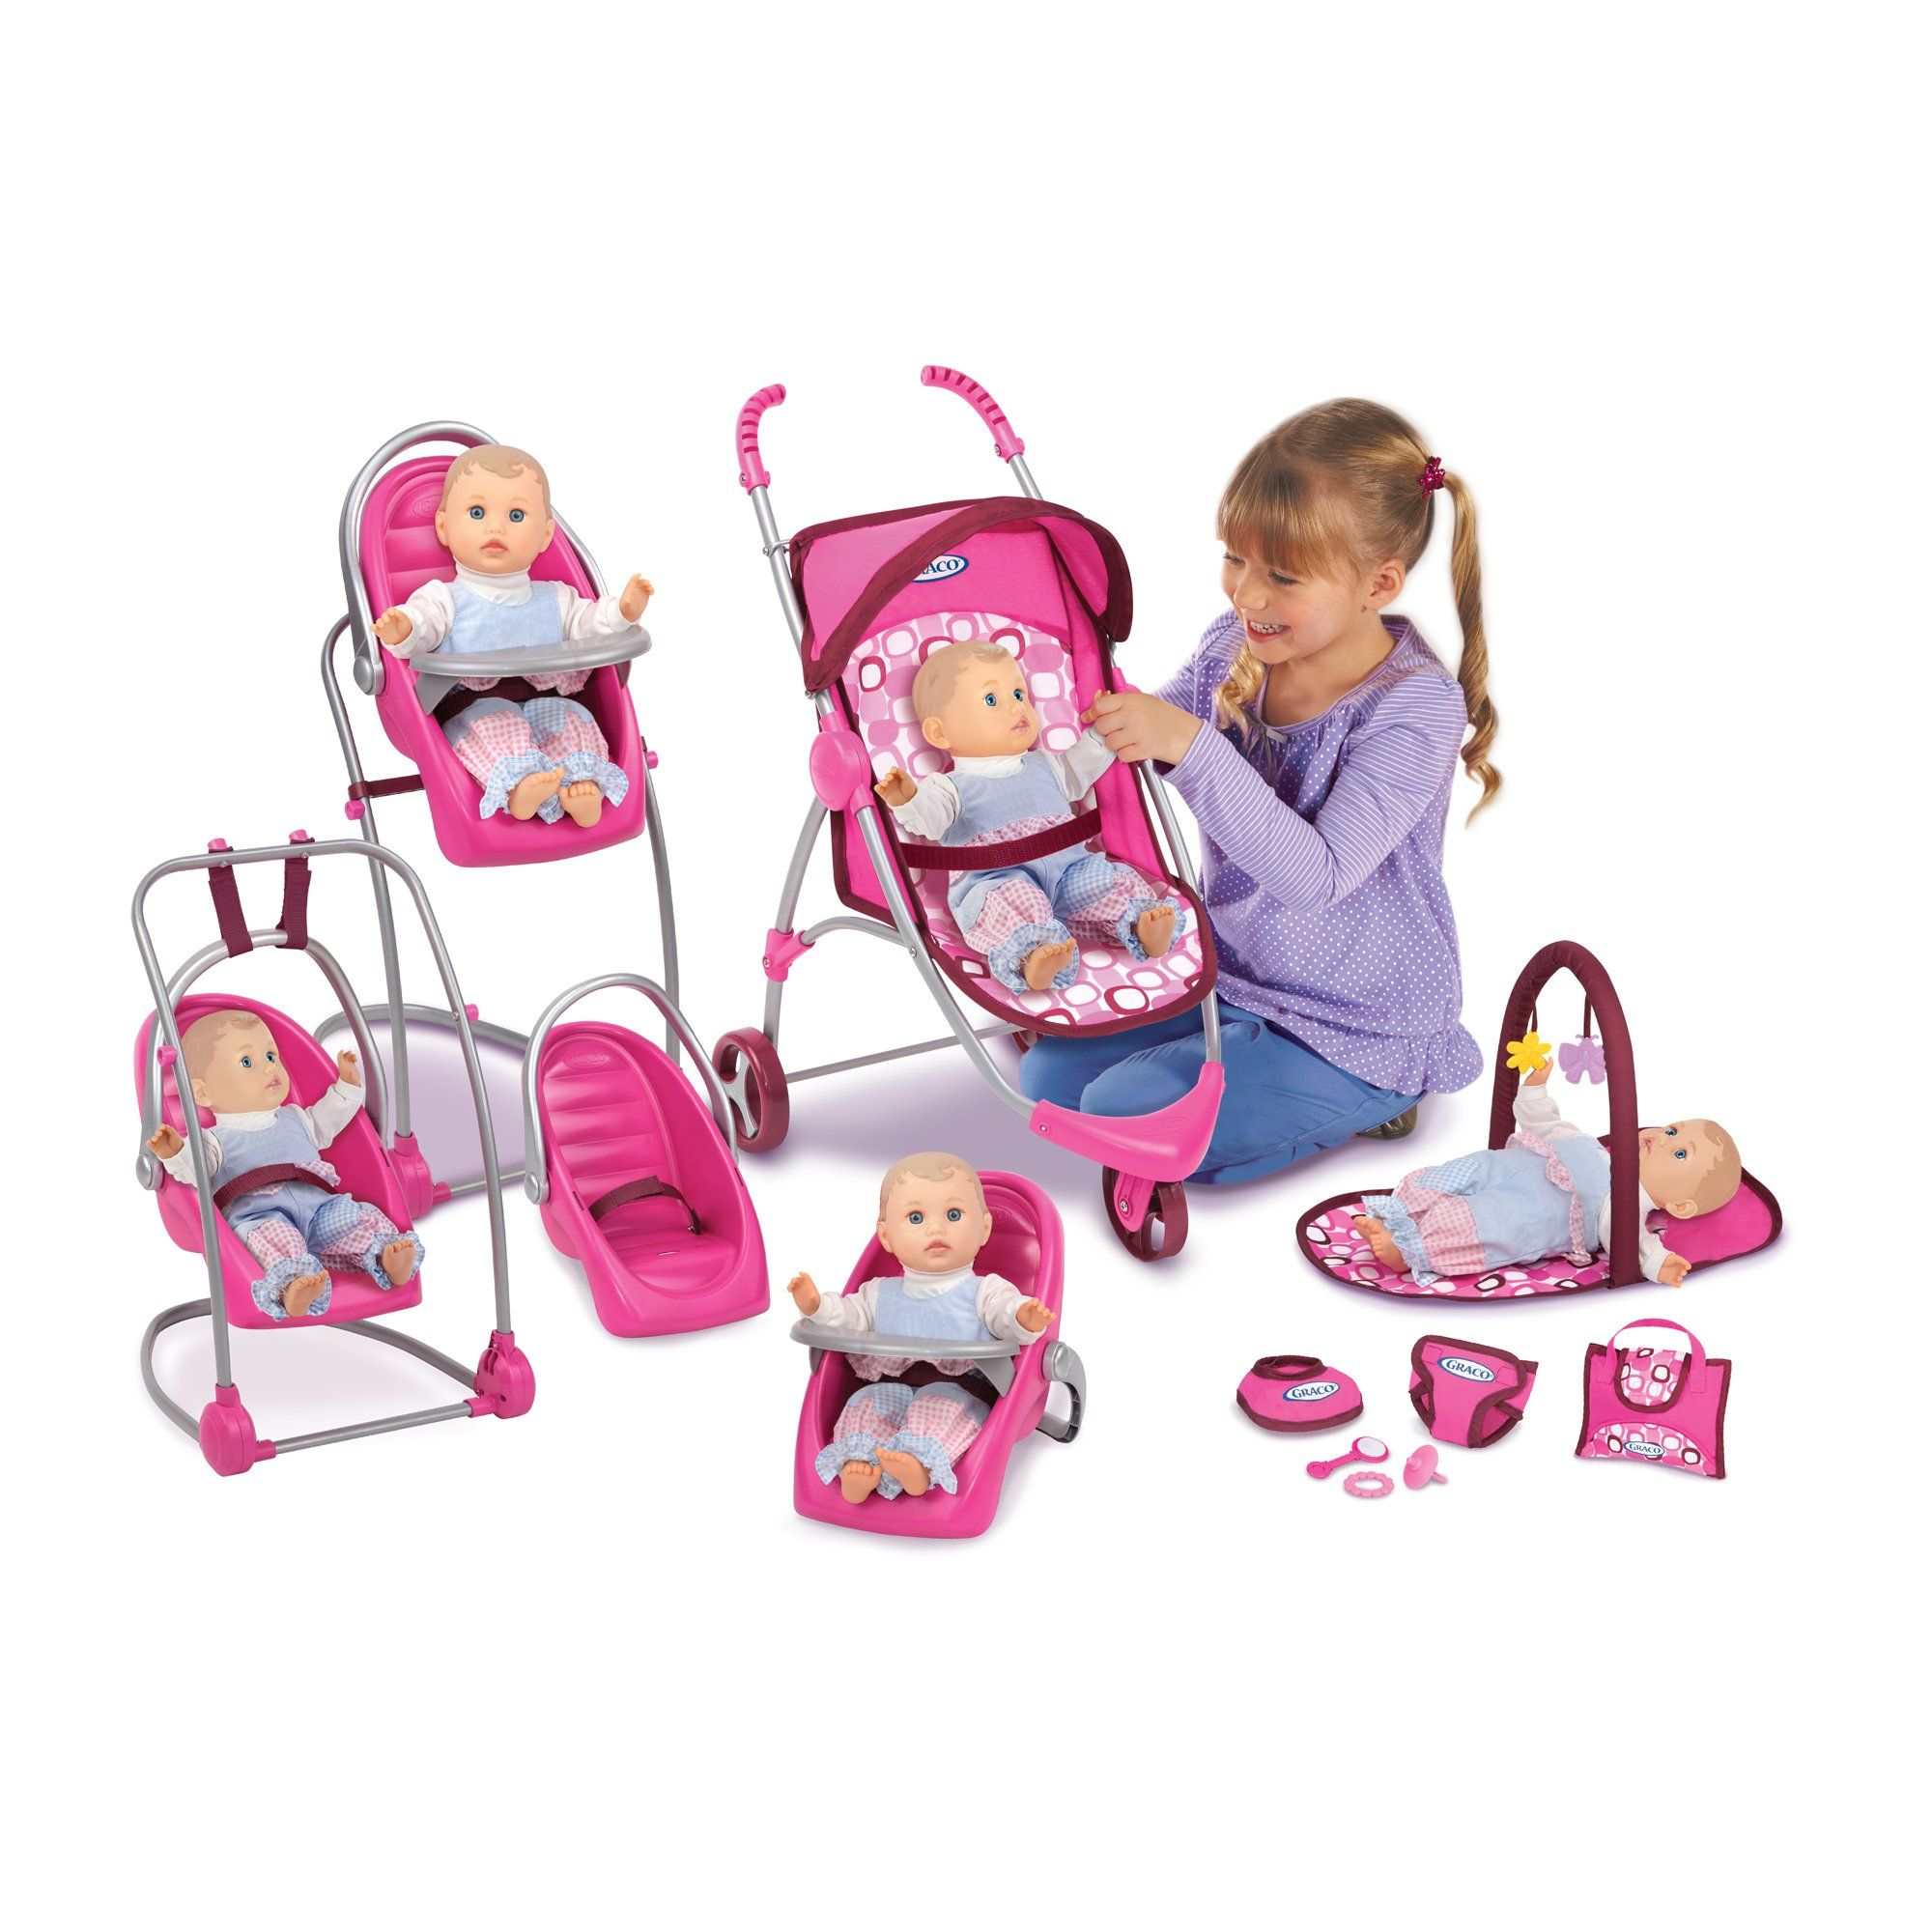 Graco U'Go Deluxe Playset Toys & Games